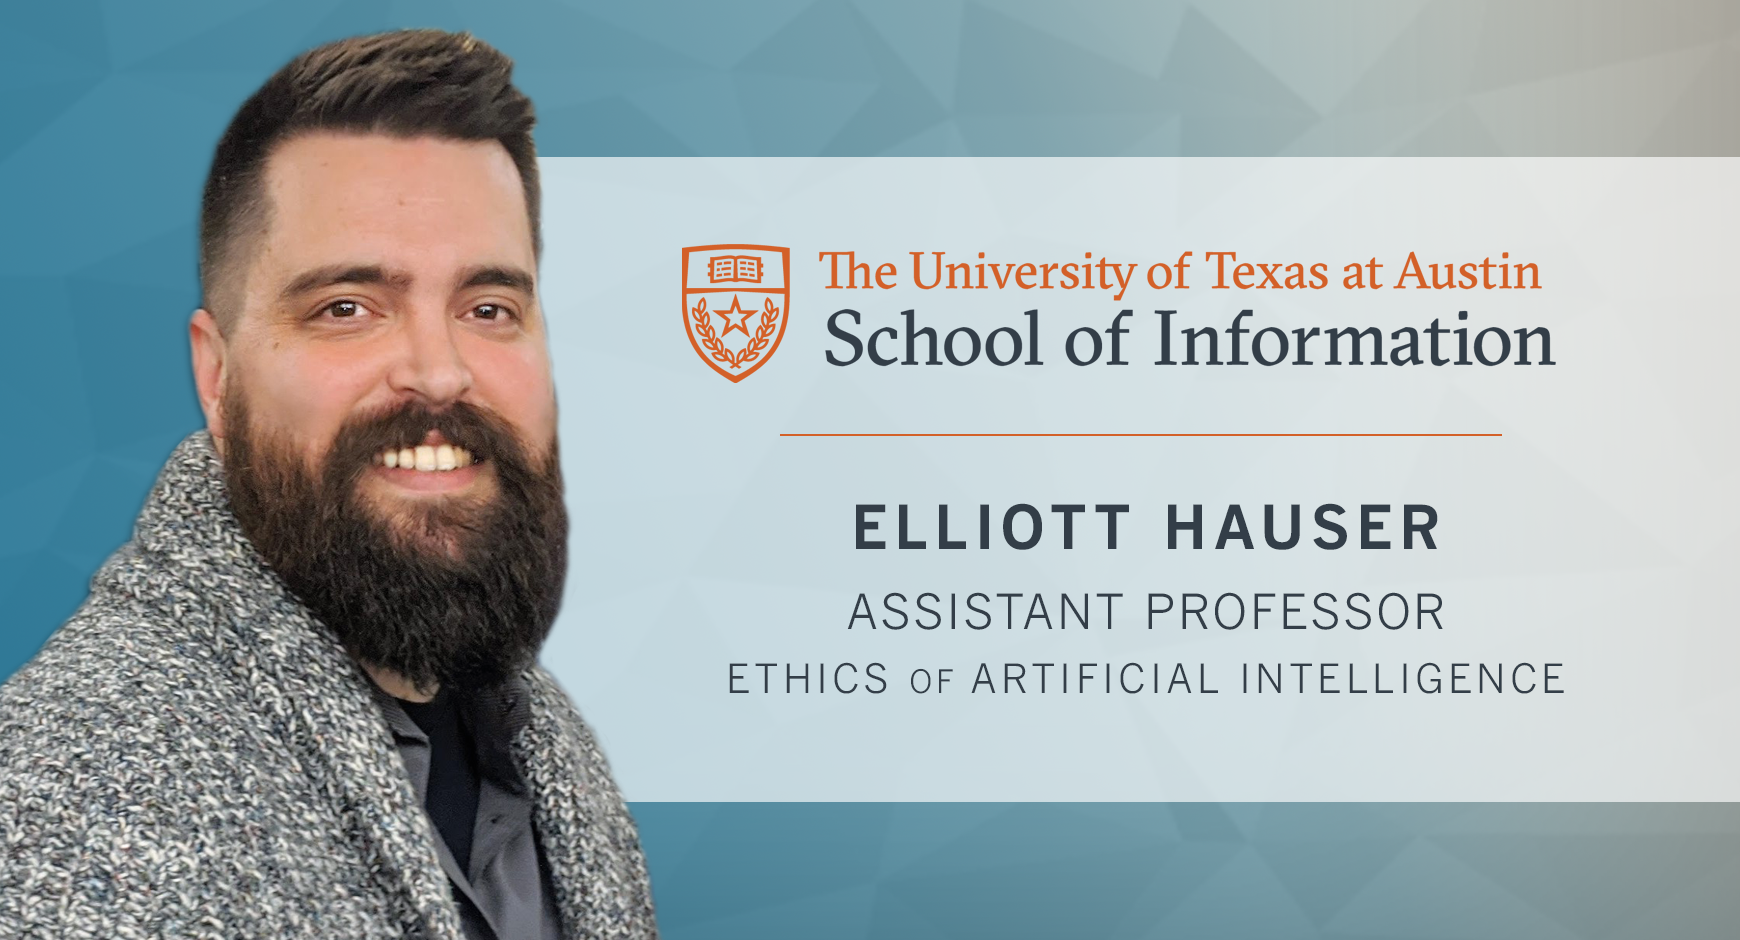 Elliott Hauser, Assistant Professor, Ethics of Artificial Intelligence